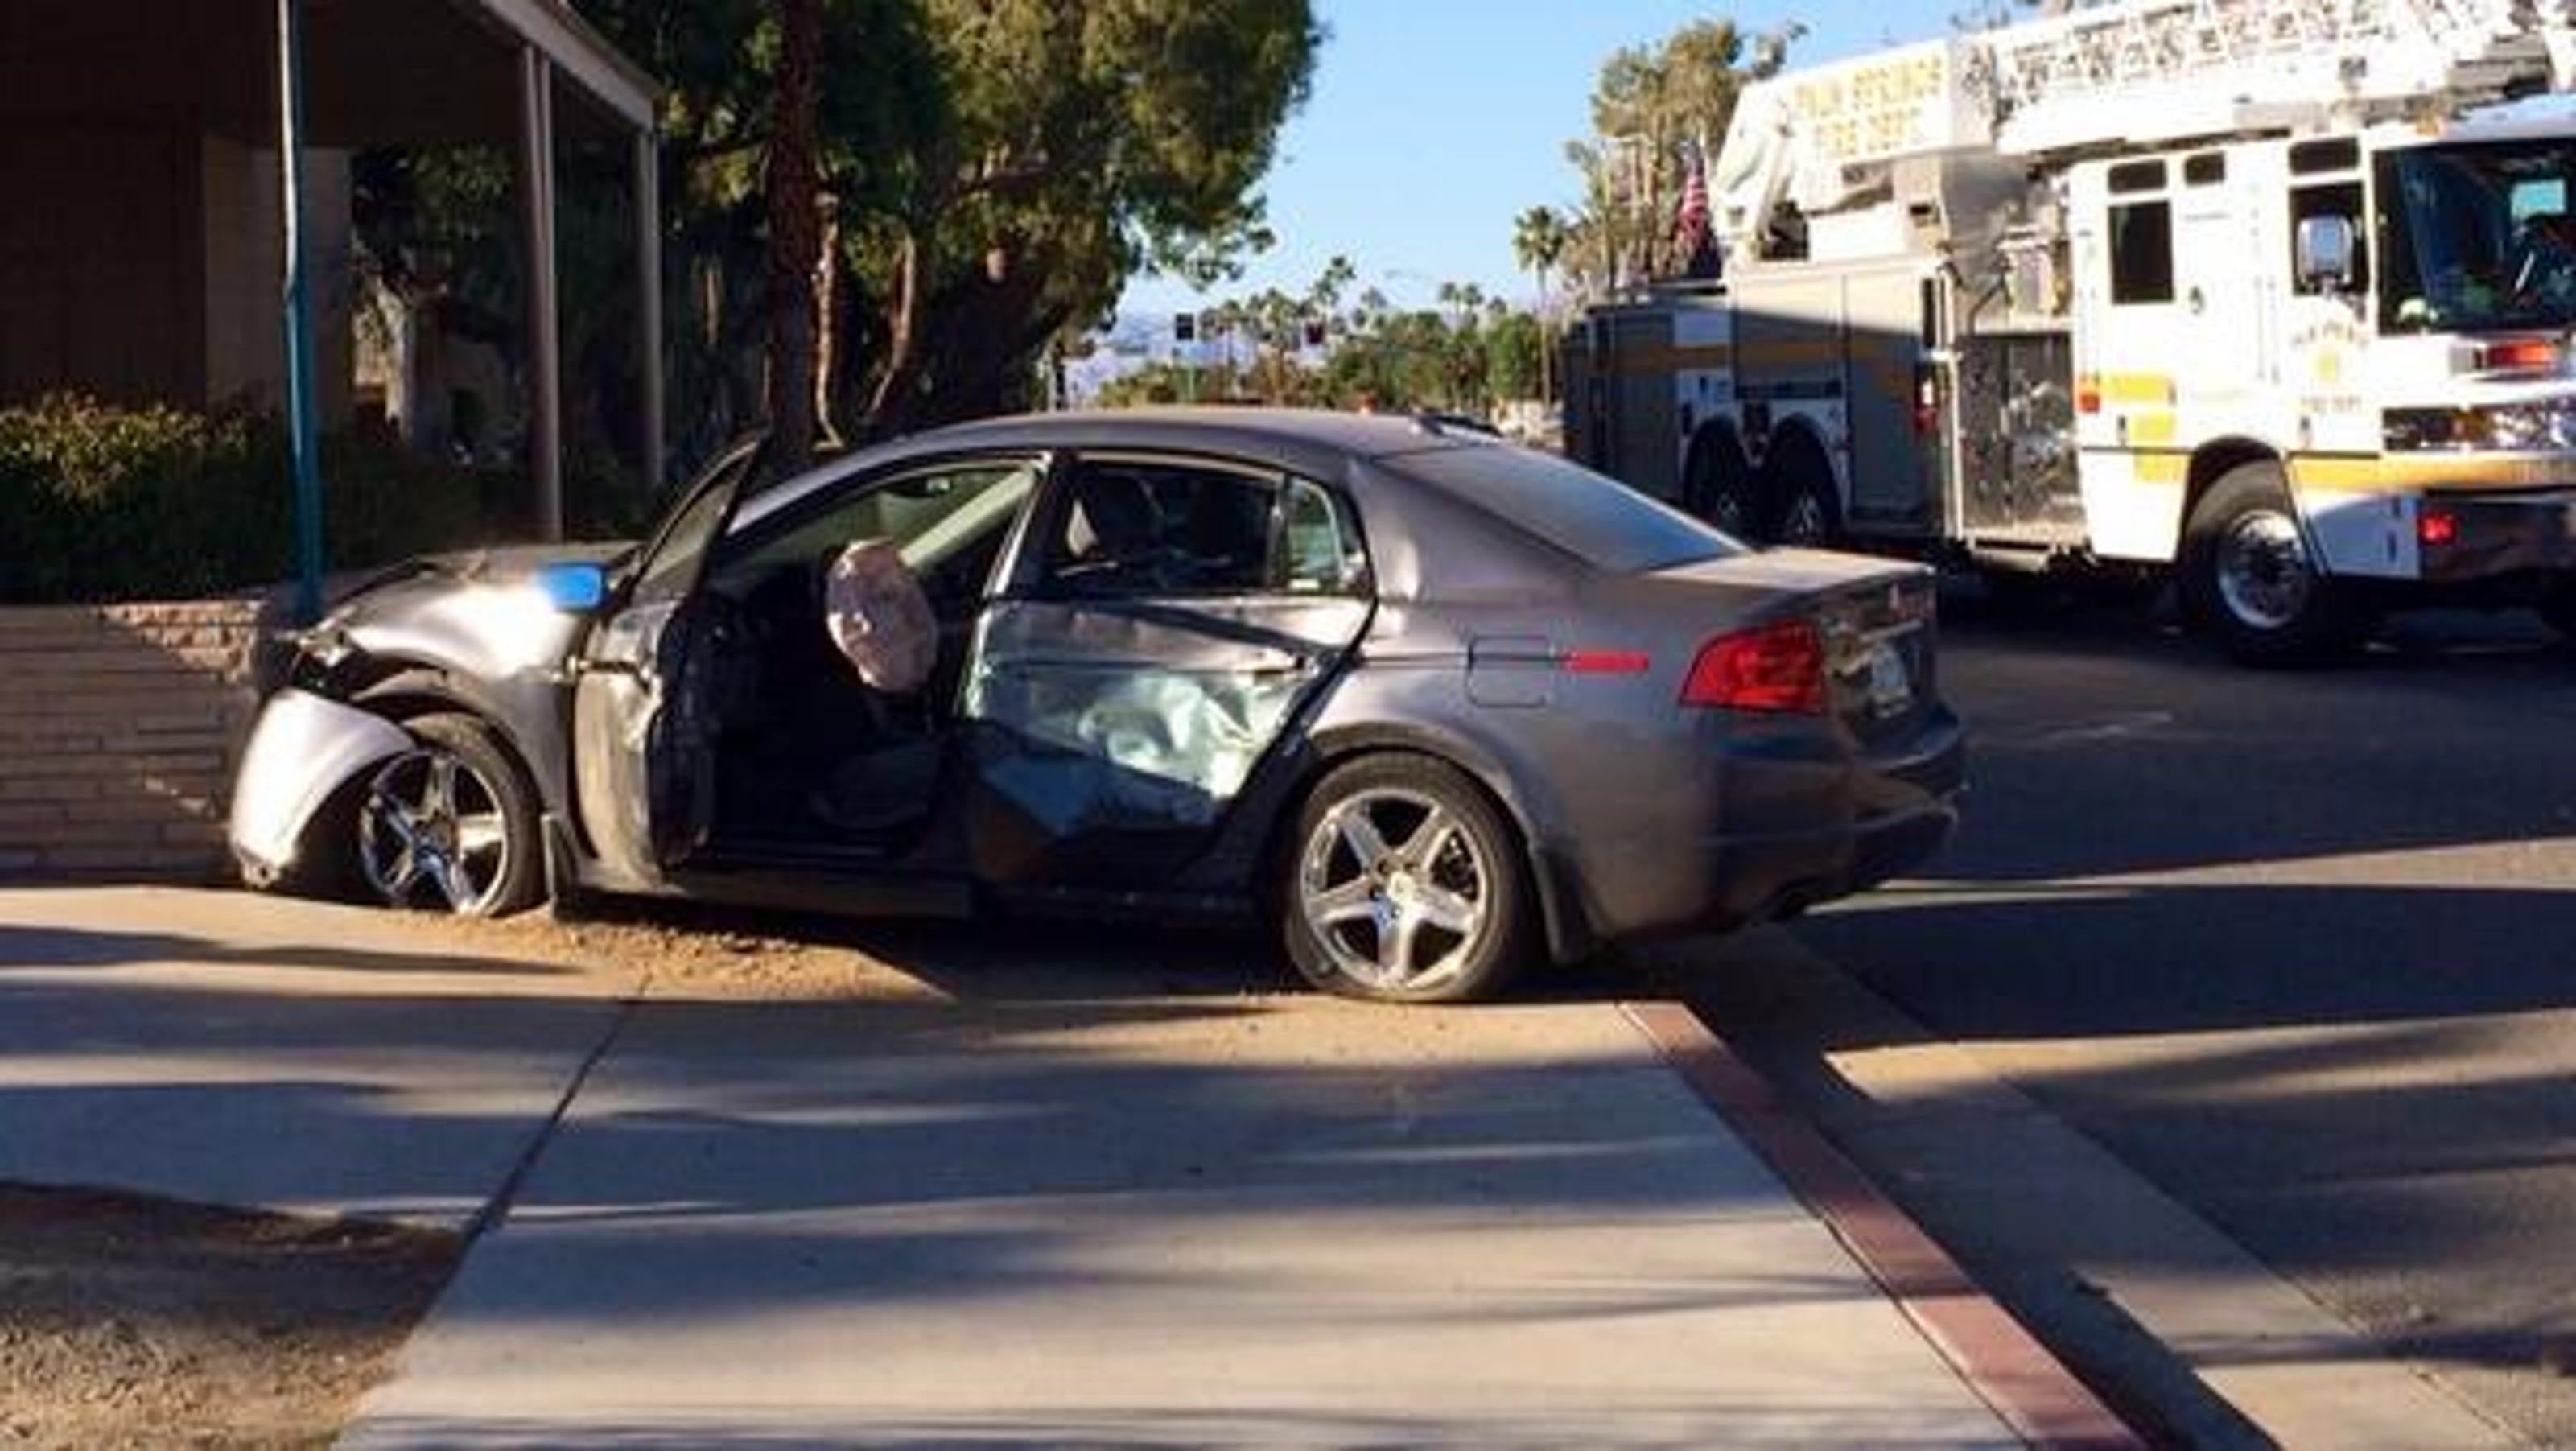 Two Vehicles Collide Near Panda Express In Palm Springs